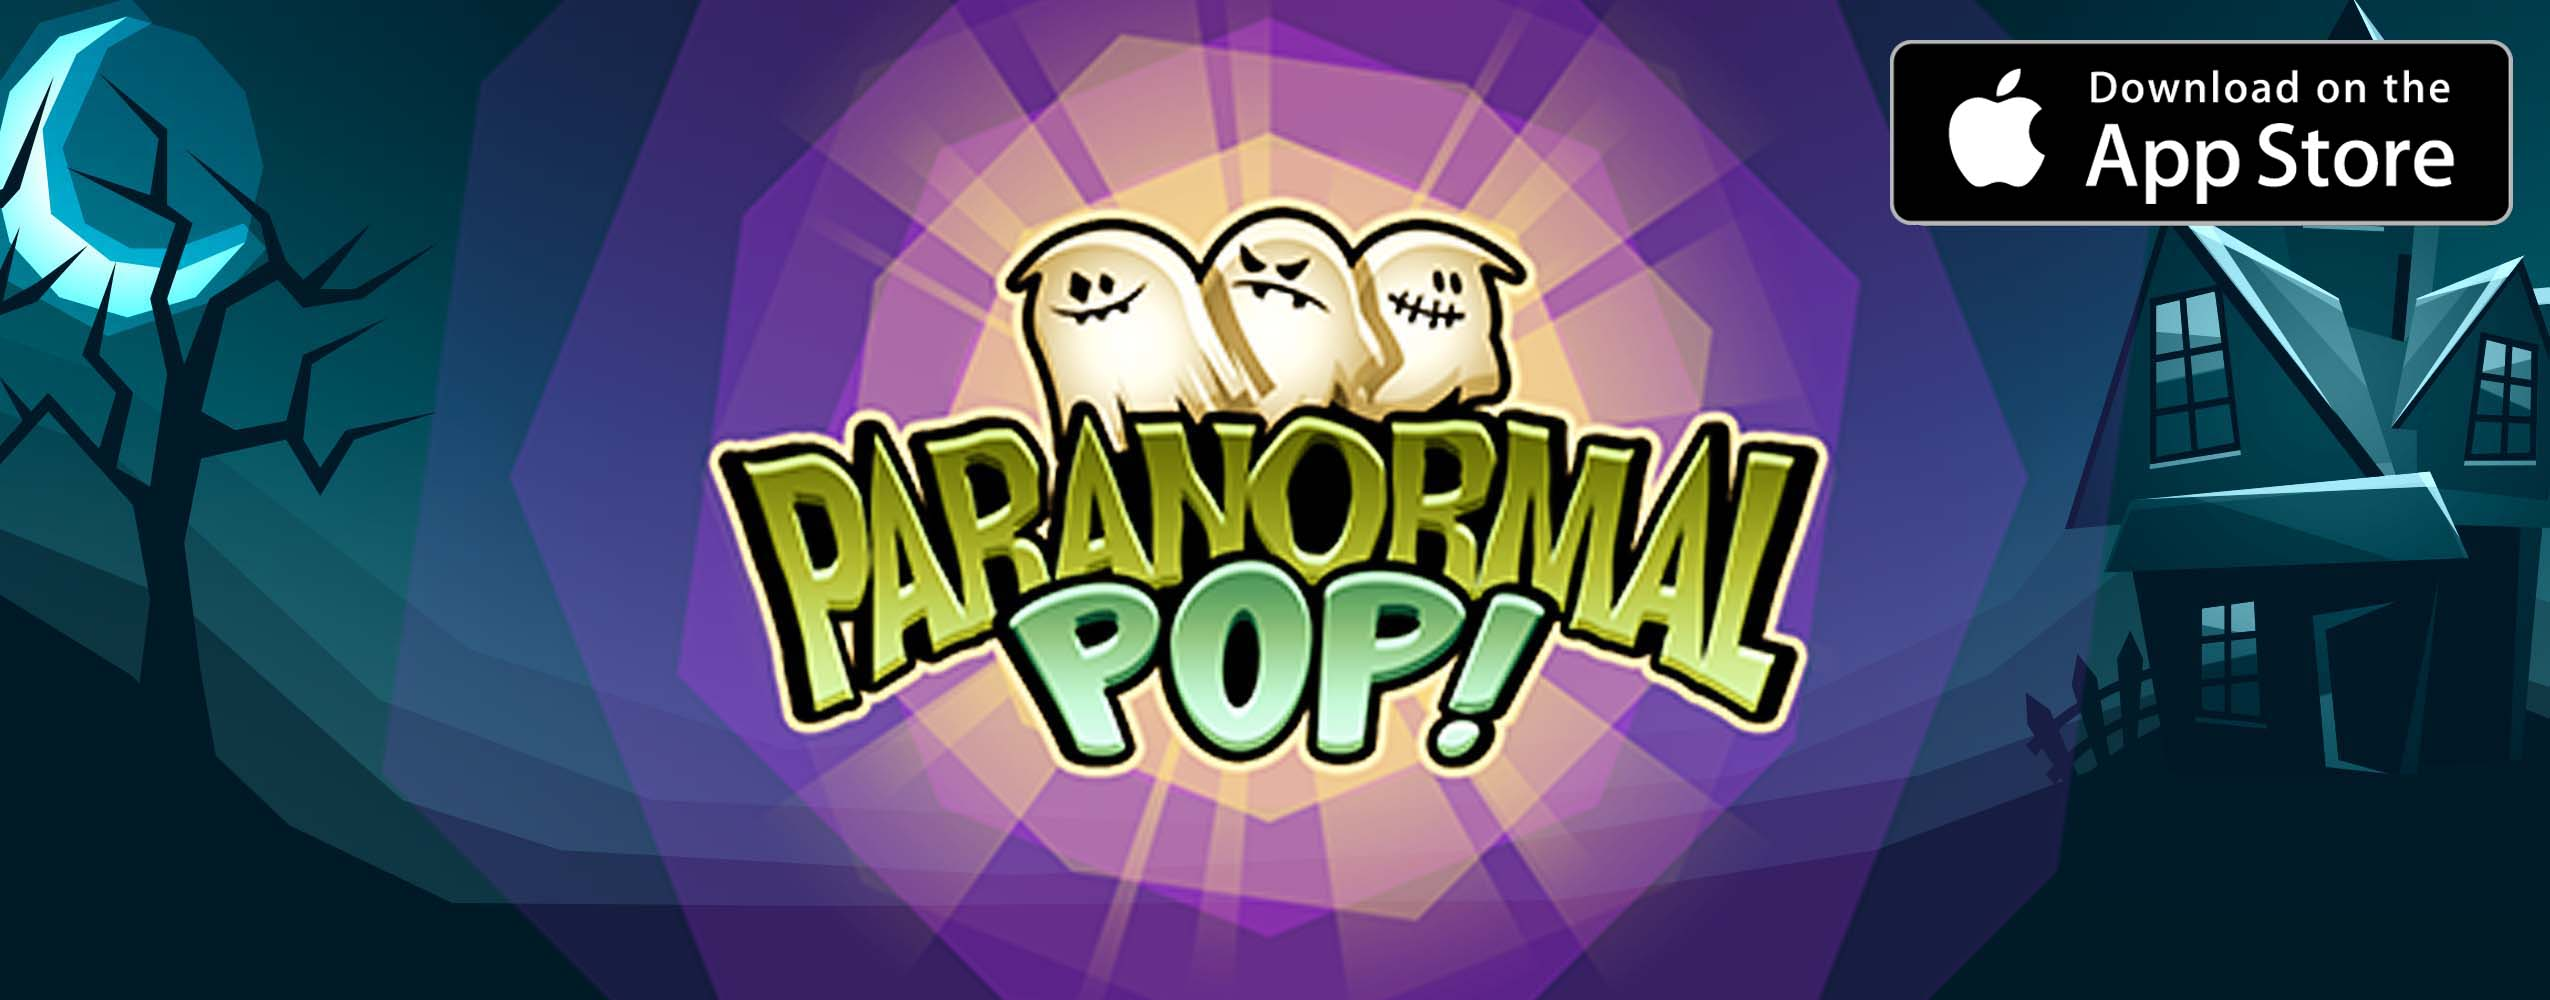 Play Paranormal Pop!